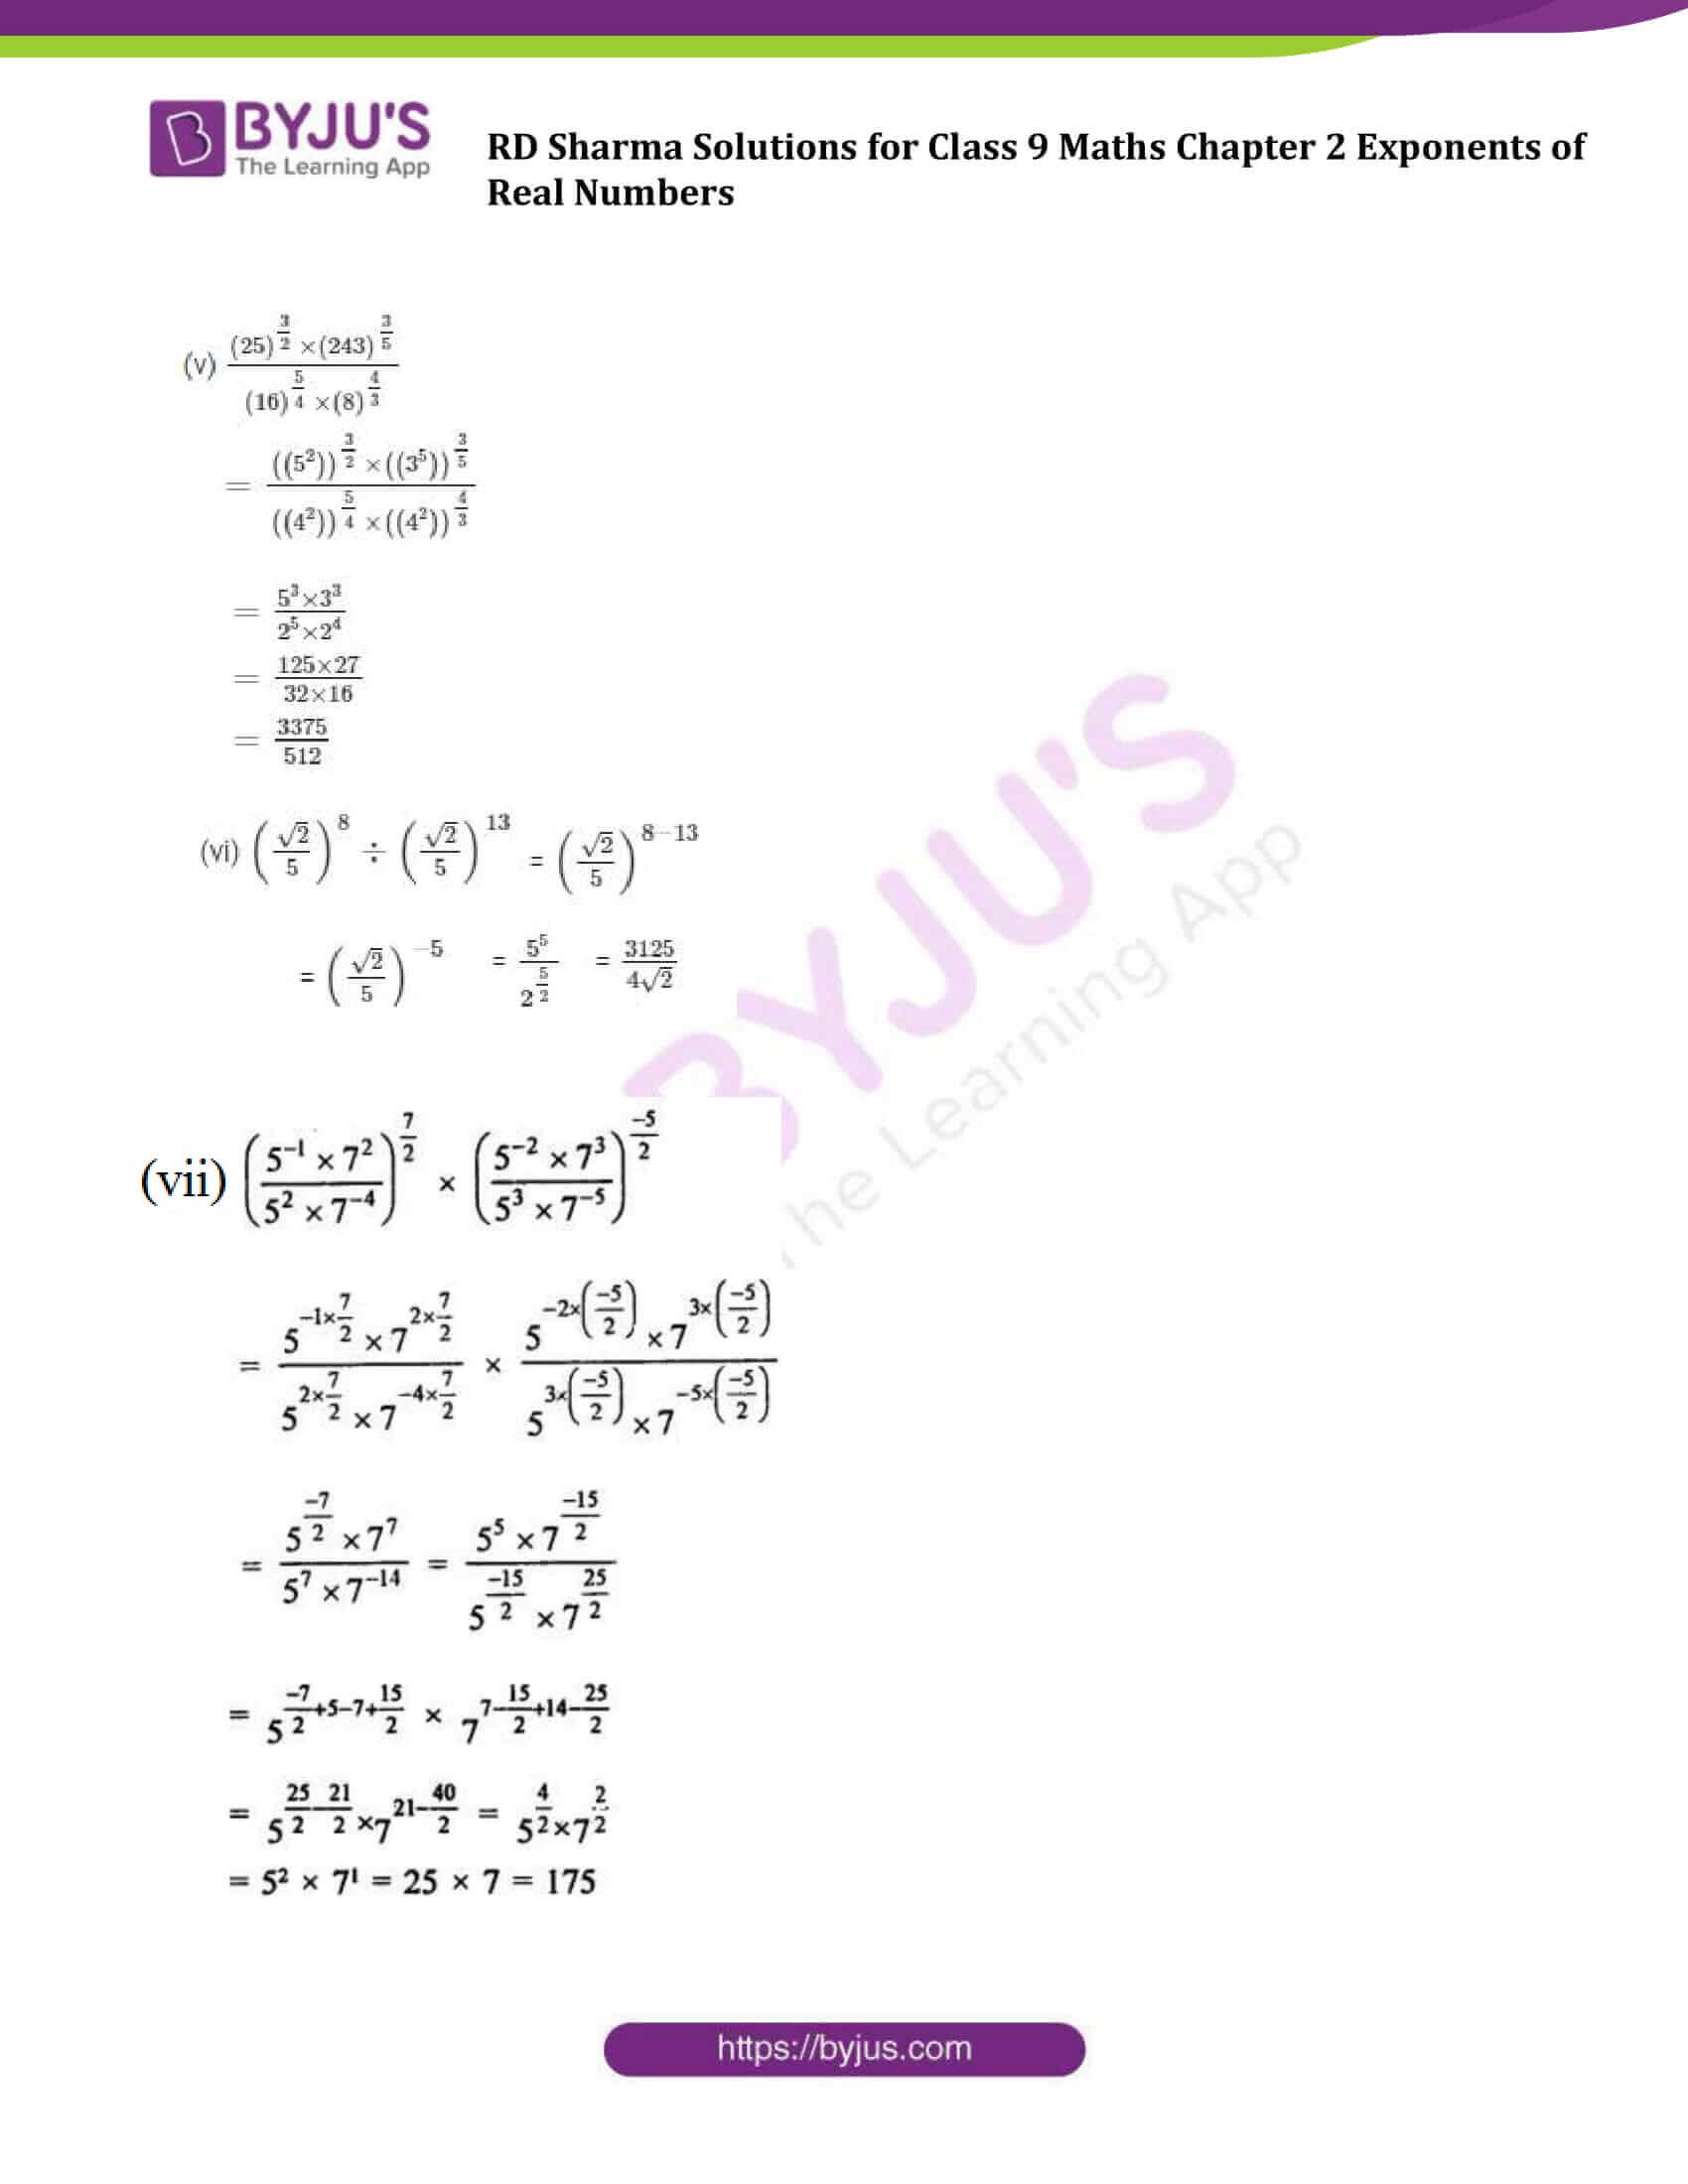 RD Sharma Solution class 9 Maths Chapter 2 Exponents of Real Numbers 13